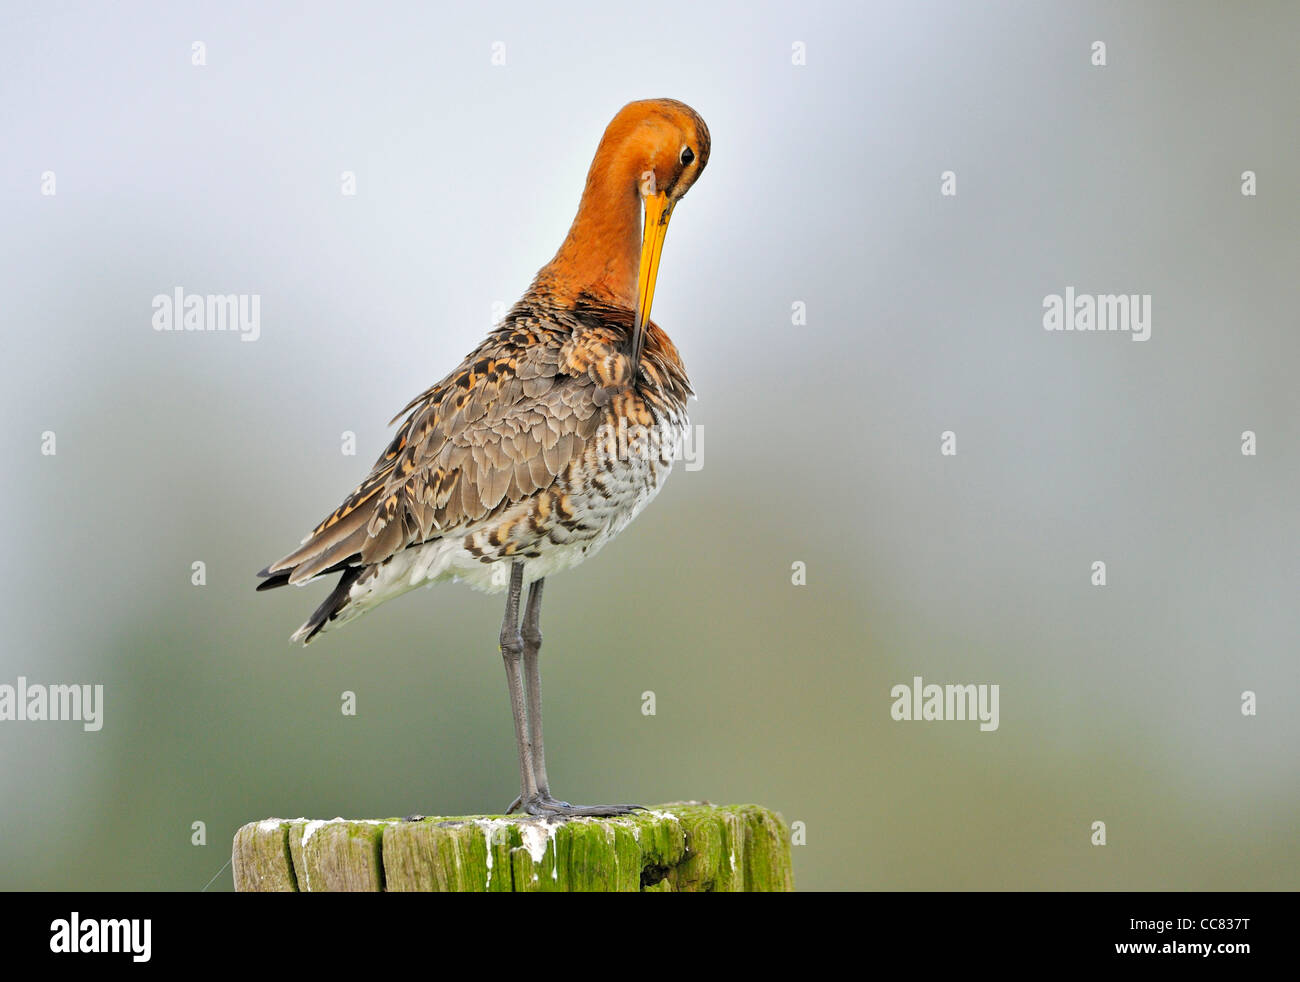 Black-tailed godwit (Limosa limosa) perched on fence post in meadow preening its feathers - Stock Image